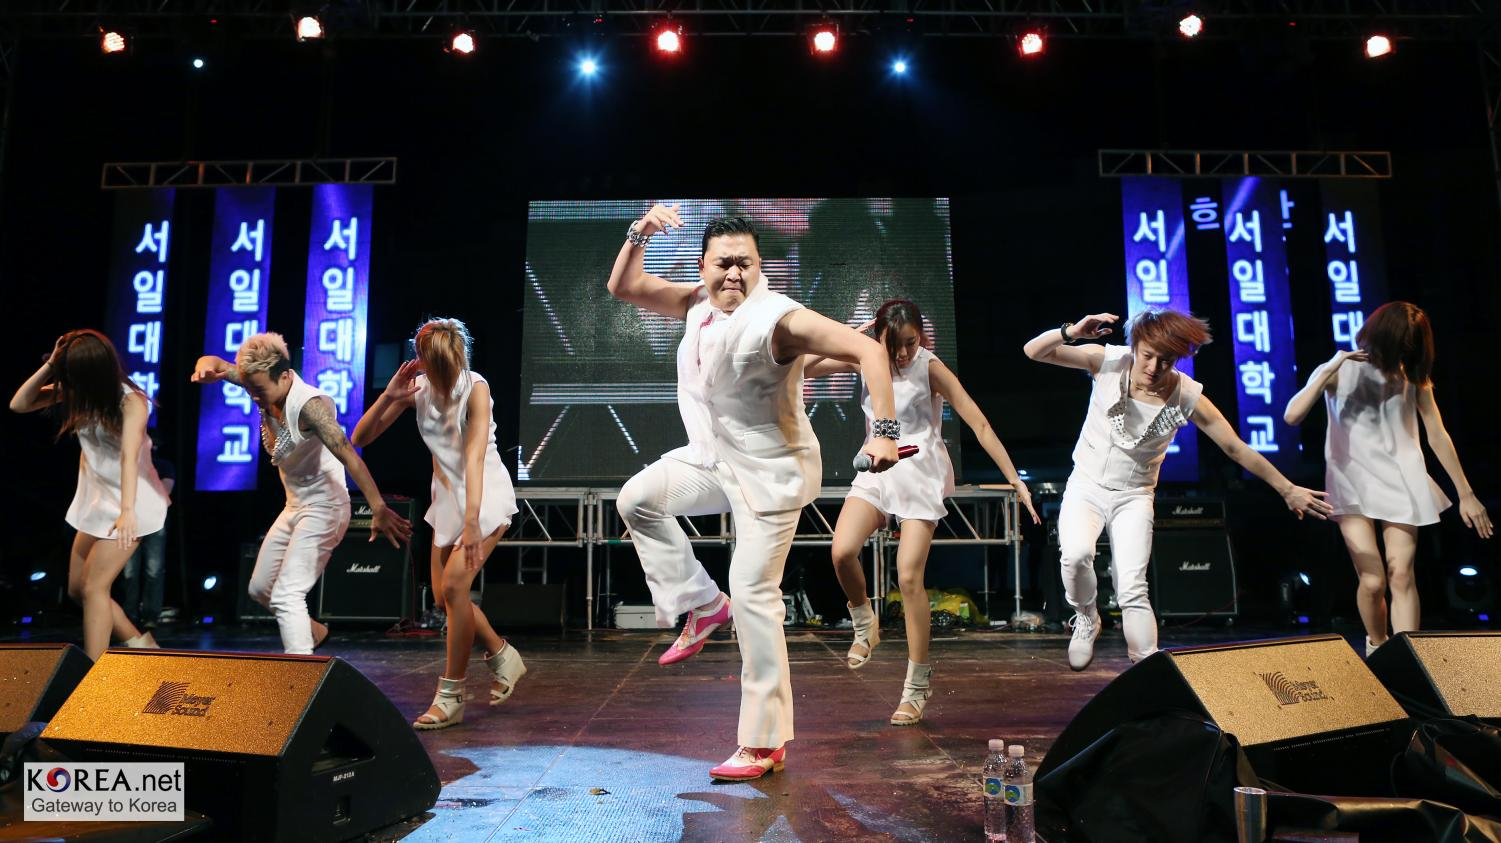 PSY performing Gangnam Style in Seoul, South Korea (photo by Jeon Han)